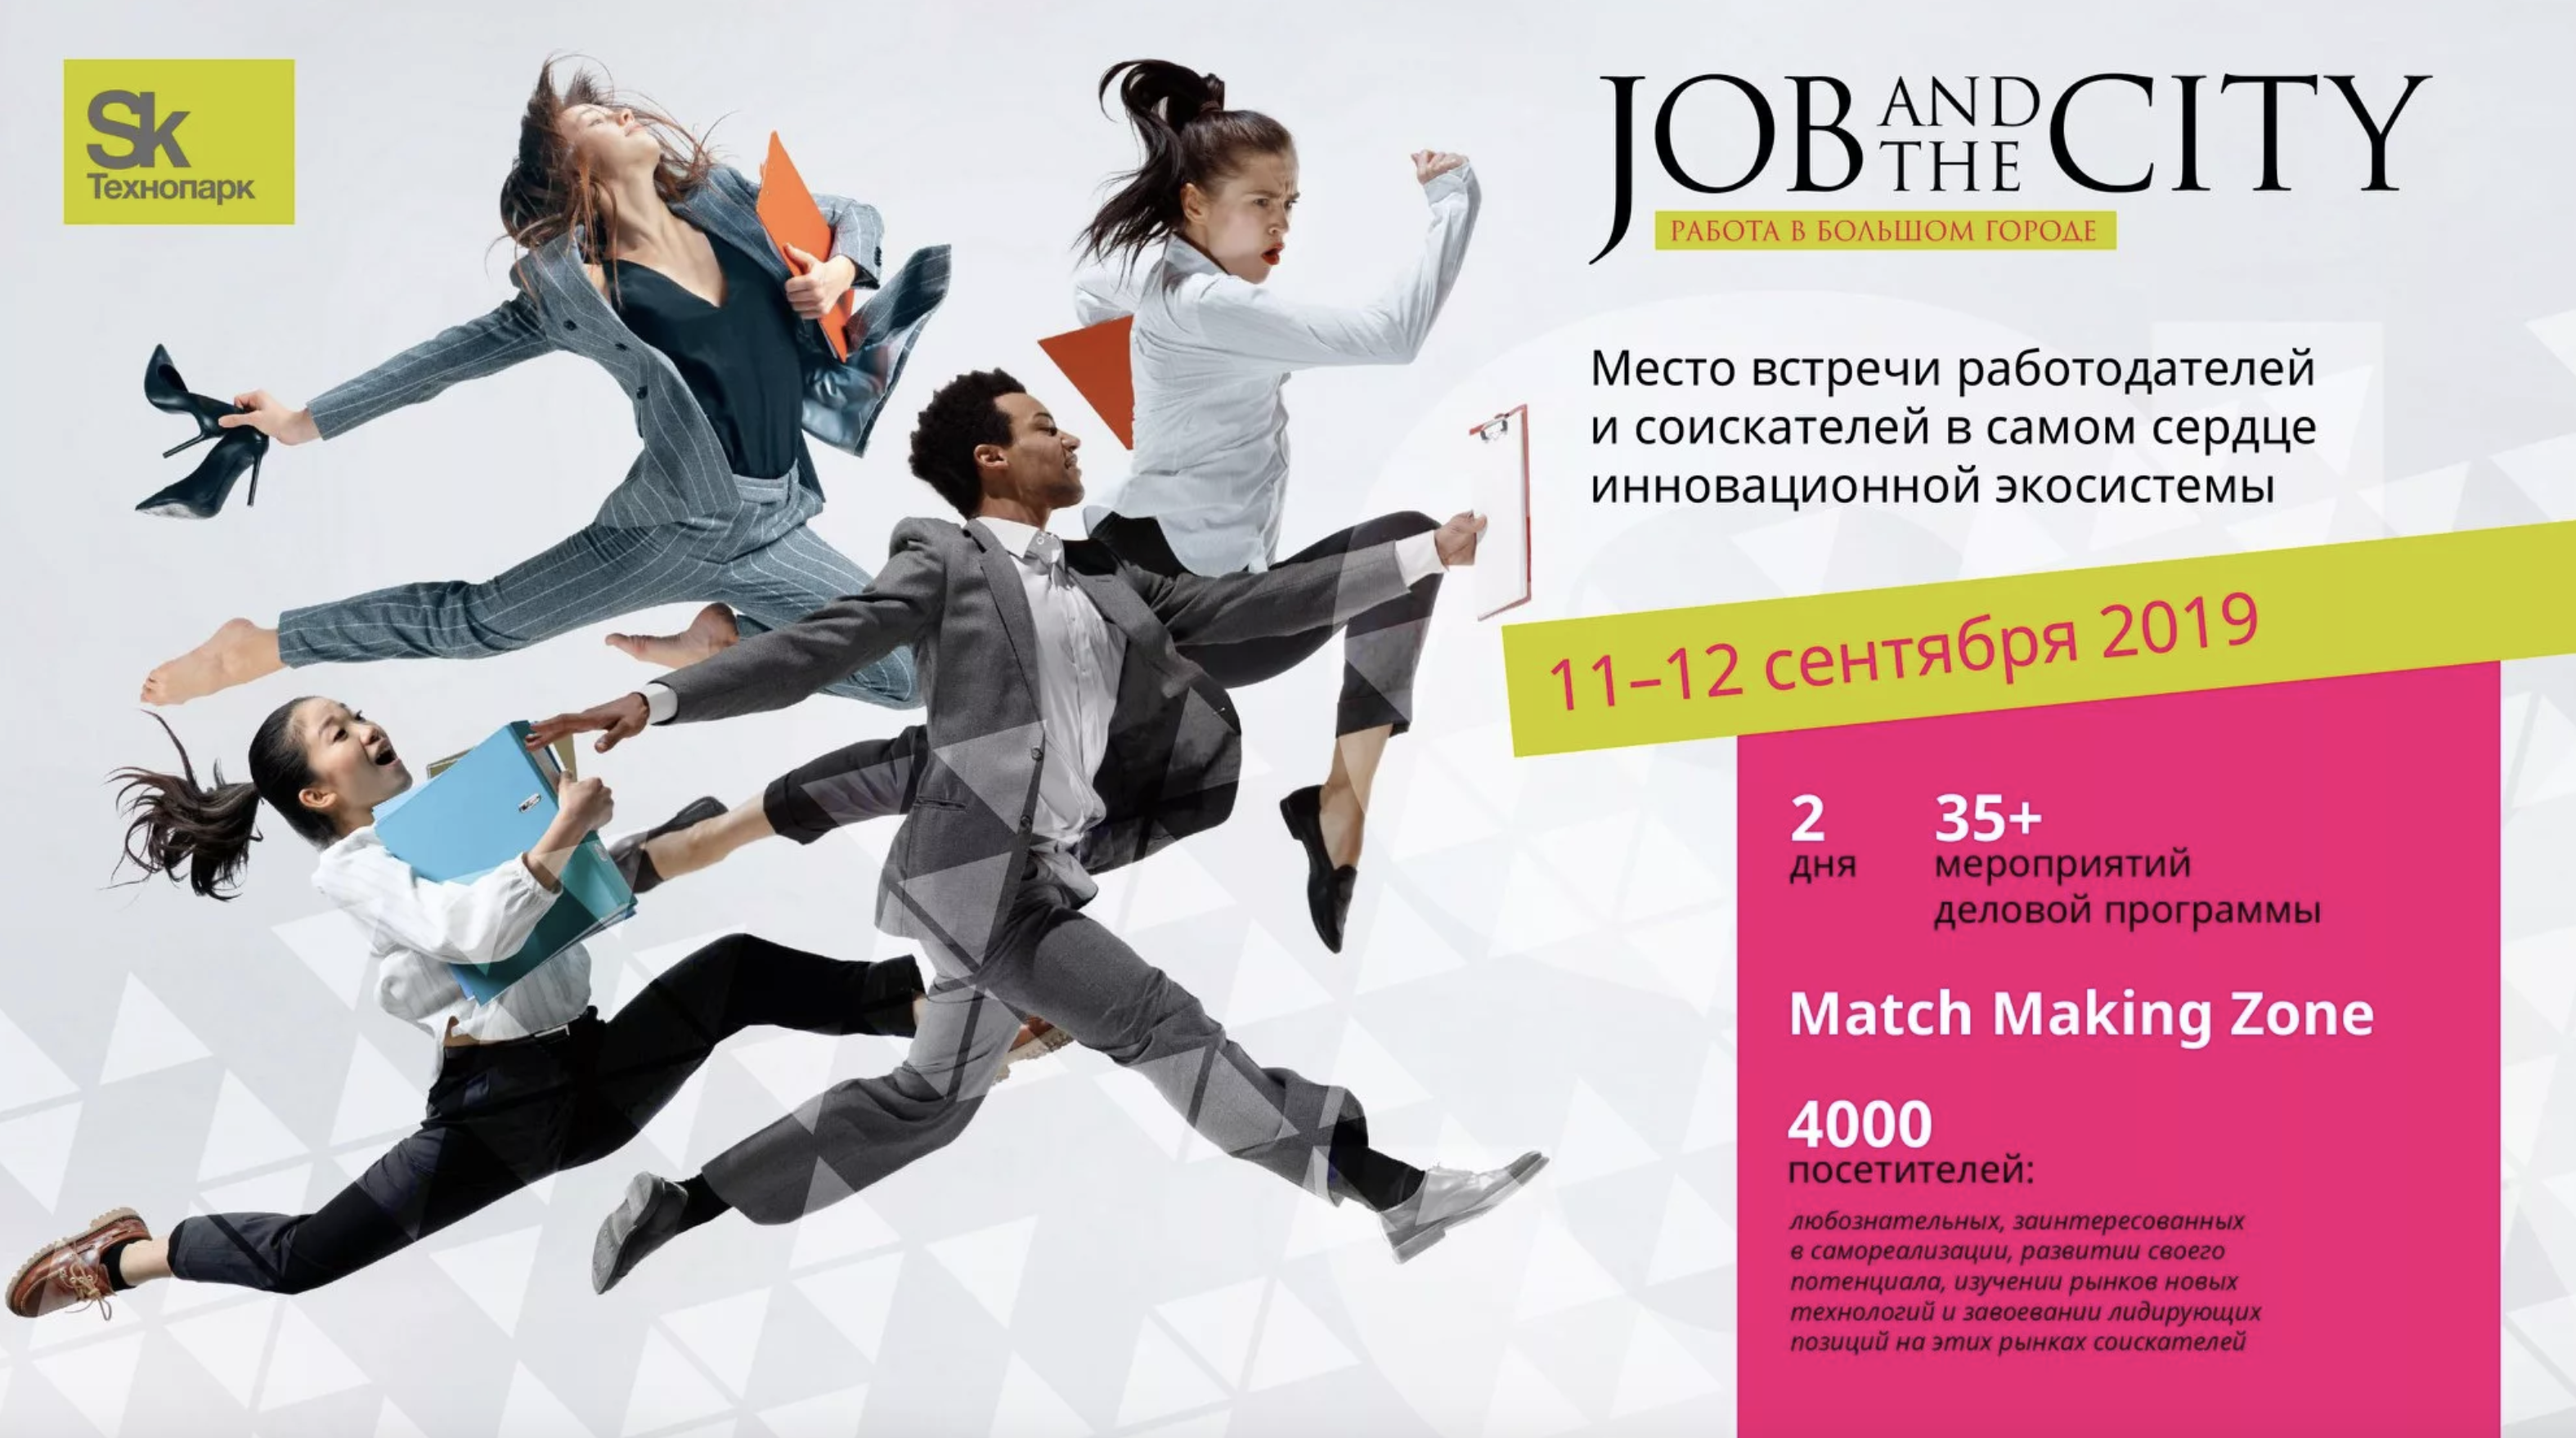 JOB AND THE CITY 2019